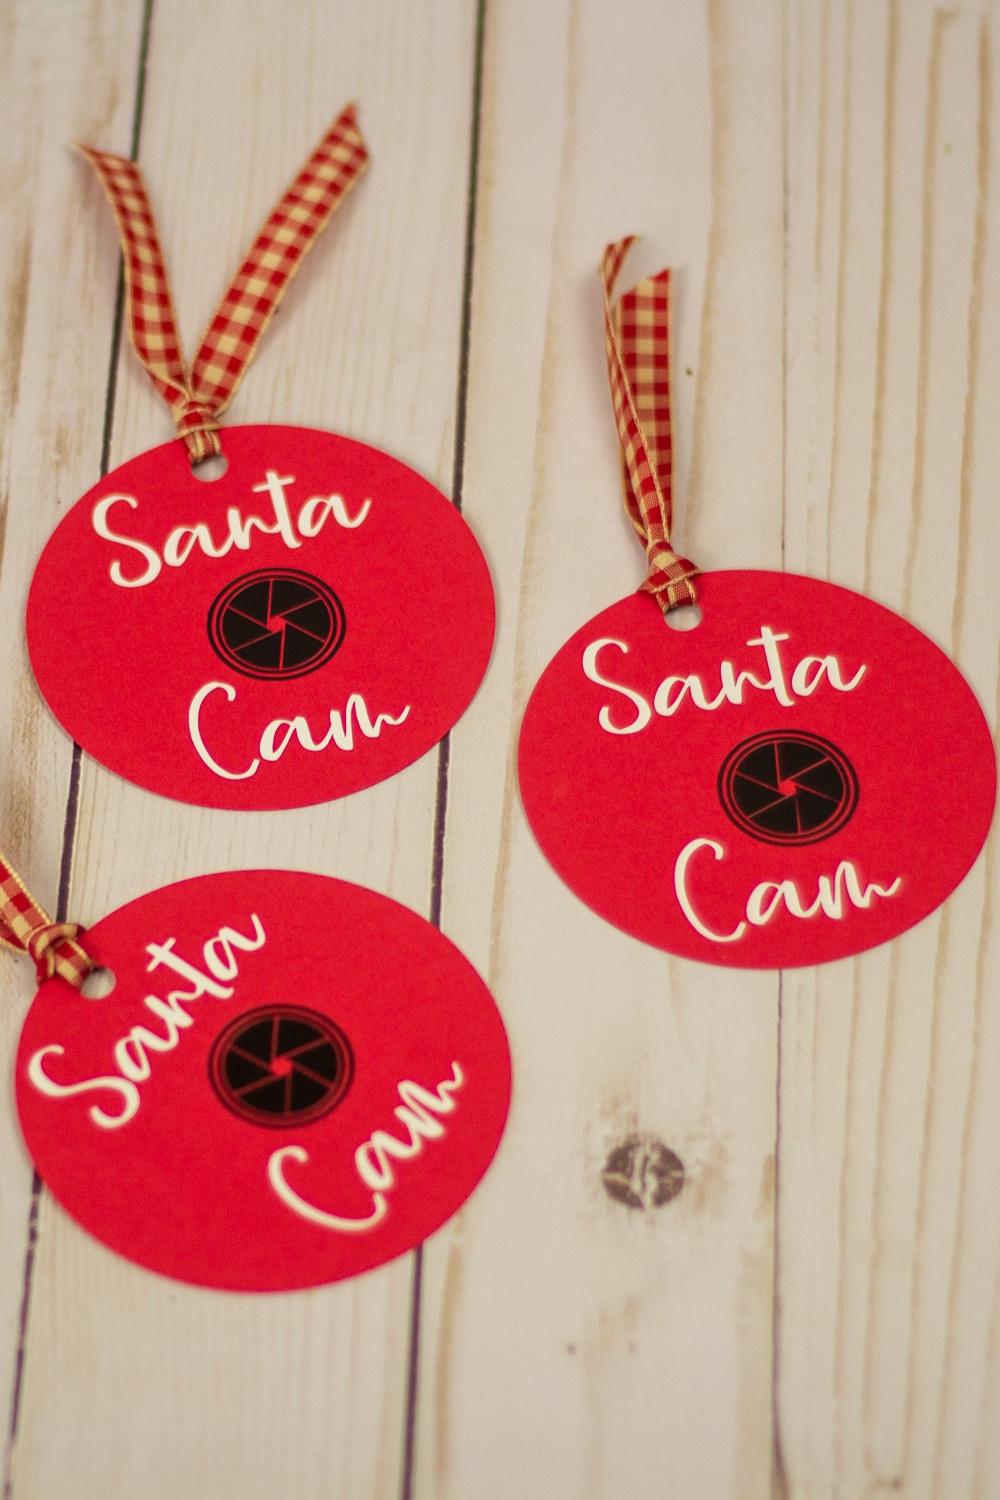 Image of paper DIY paper ornaments in red with santa cam on them in script font.